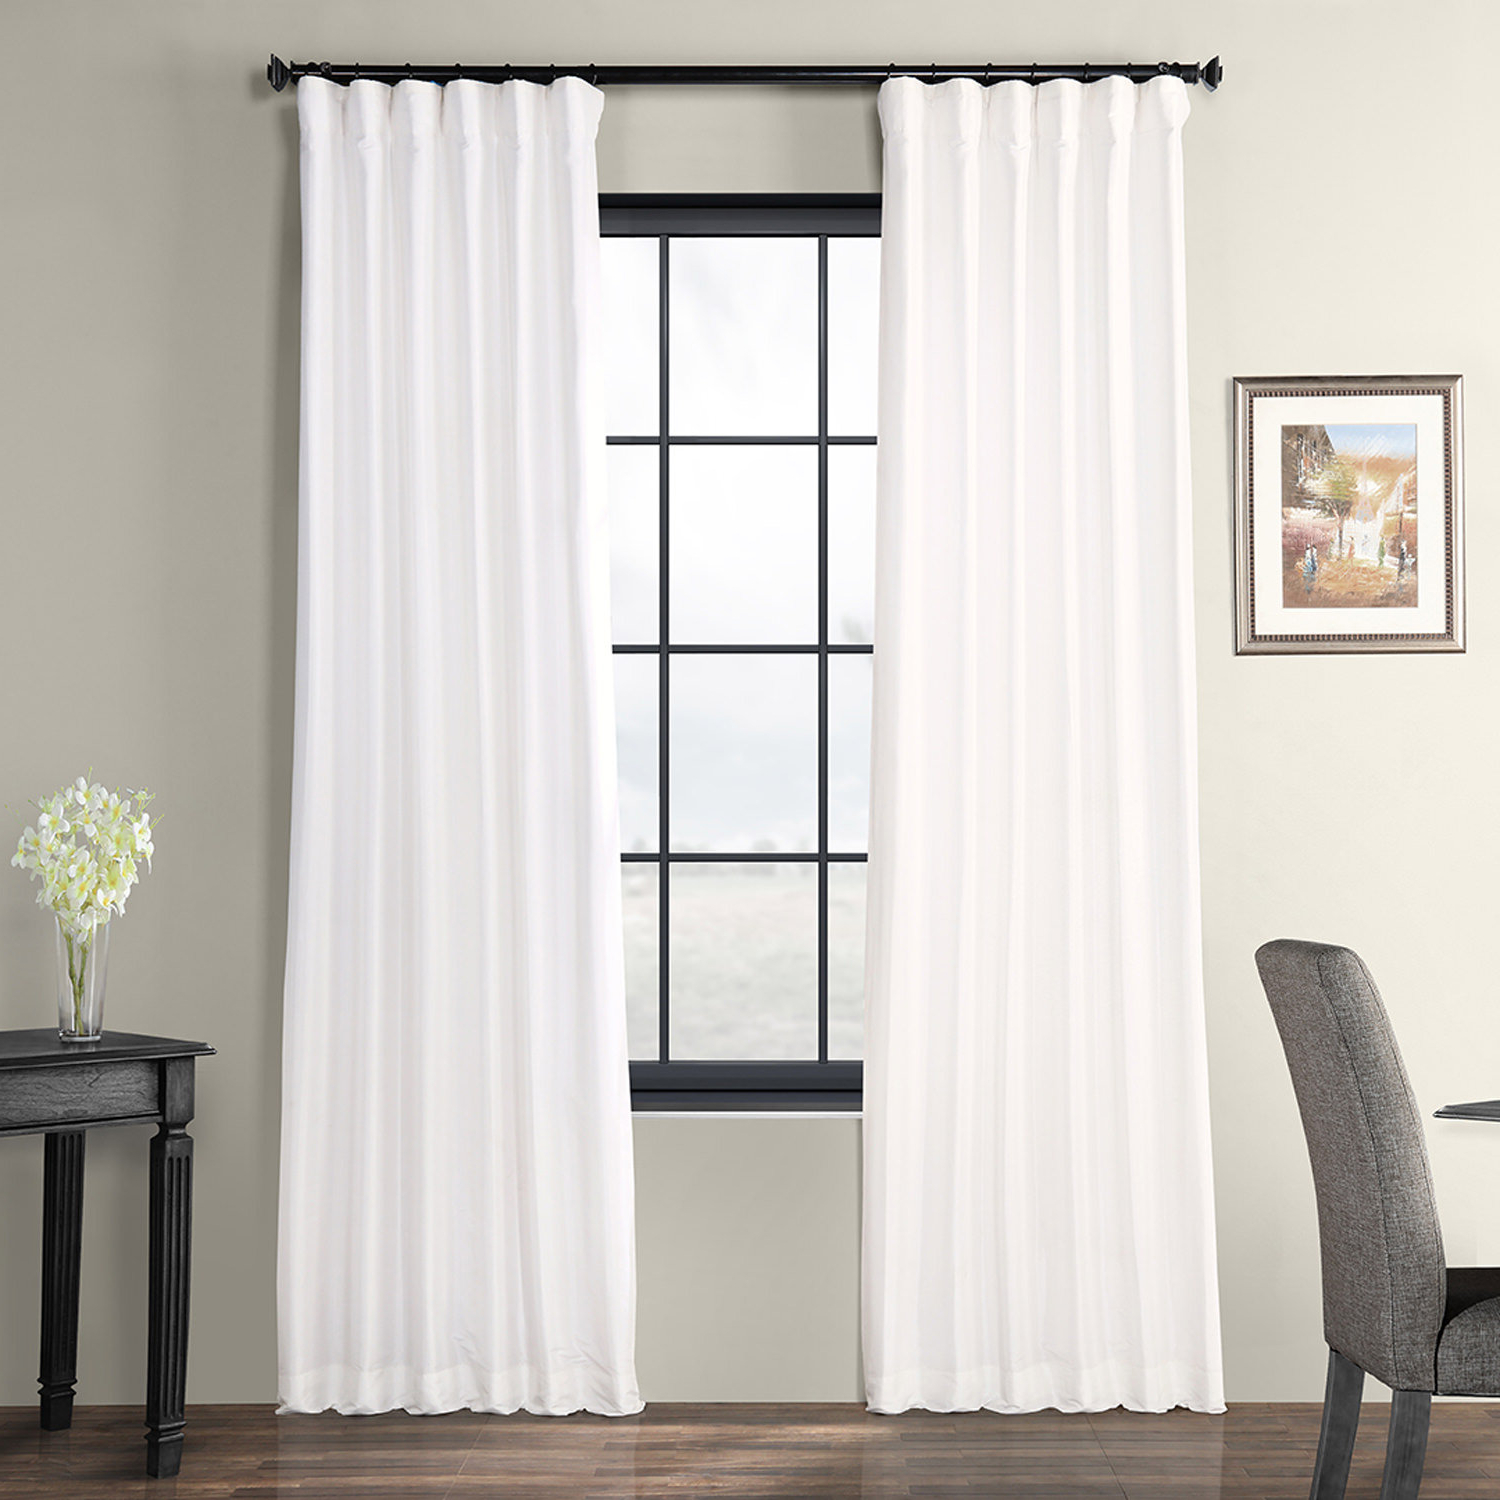 Lochleven Faux Silk Taffeta Solid Room Polyester Darkening Single Curtain  Panel Regarding Preferred Solid Faux Silk Taffeta Graphite Single Curtain Panels (Gallery 9 of 20)